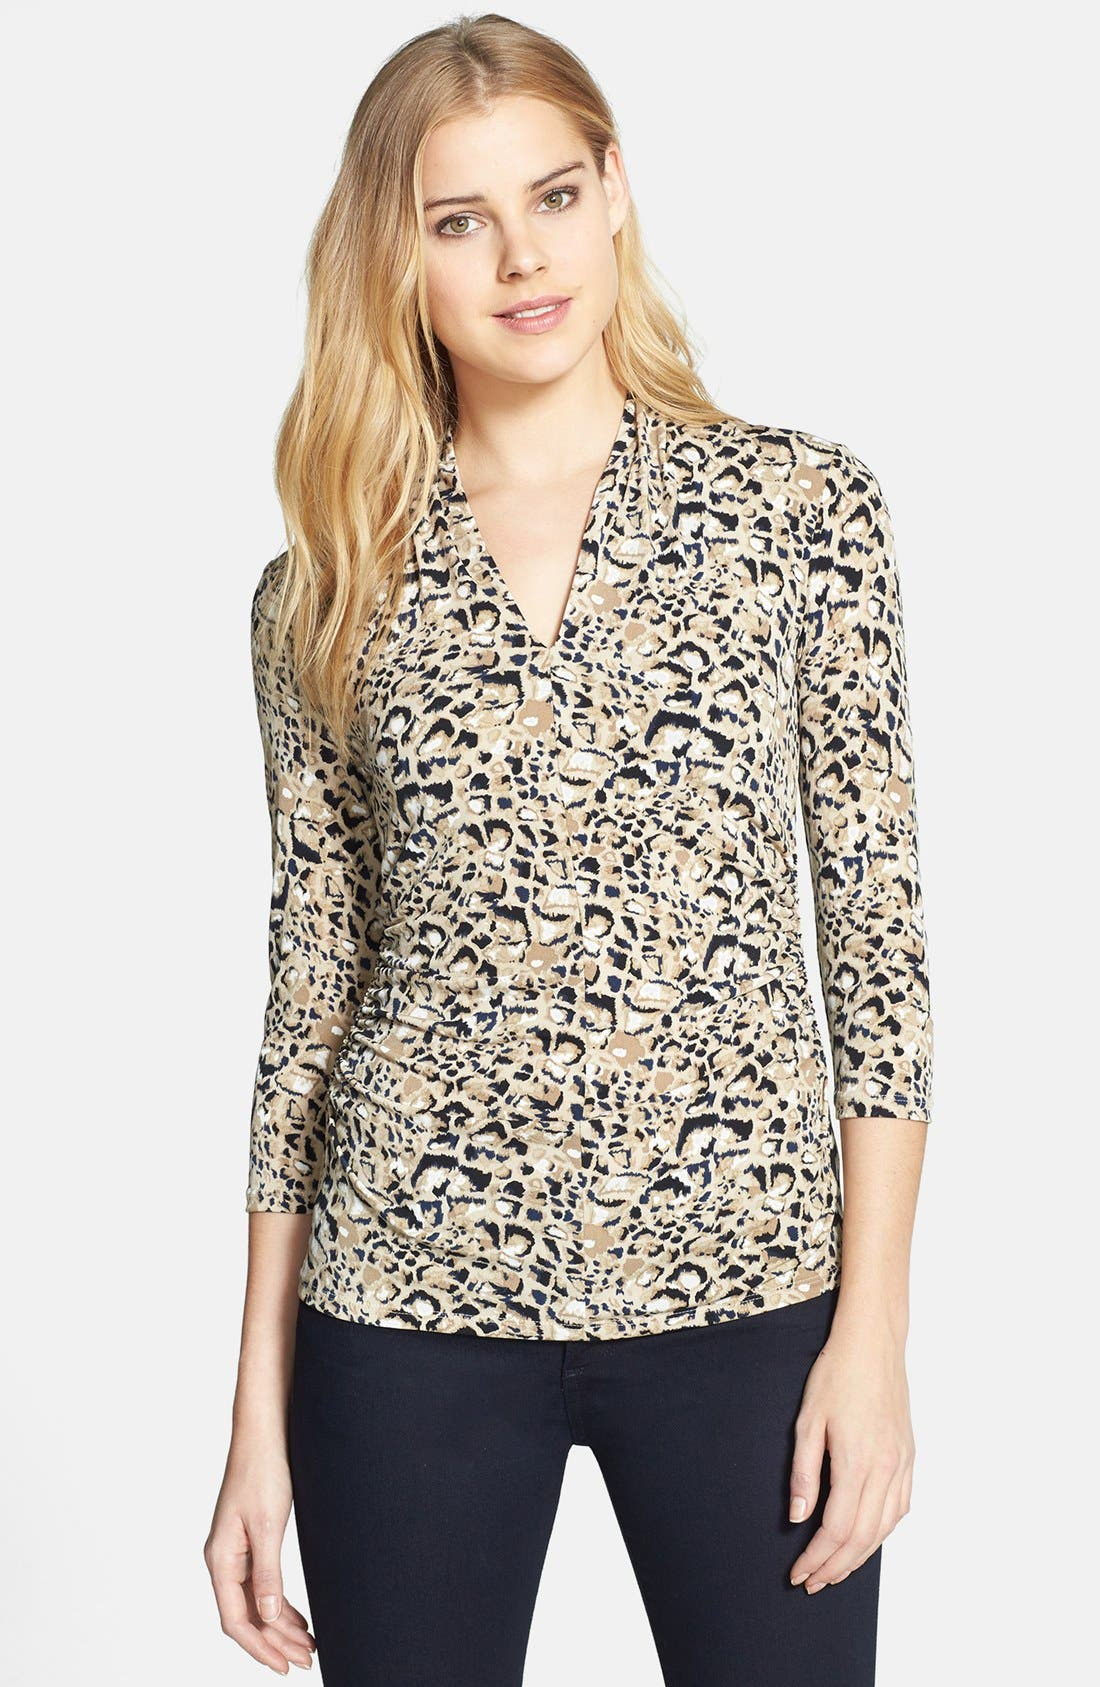 Main Image - Vince Camuto 'Animal Rocks' V-Neck Top